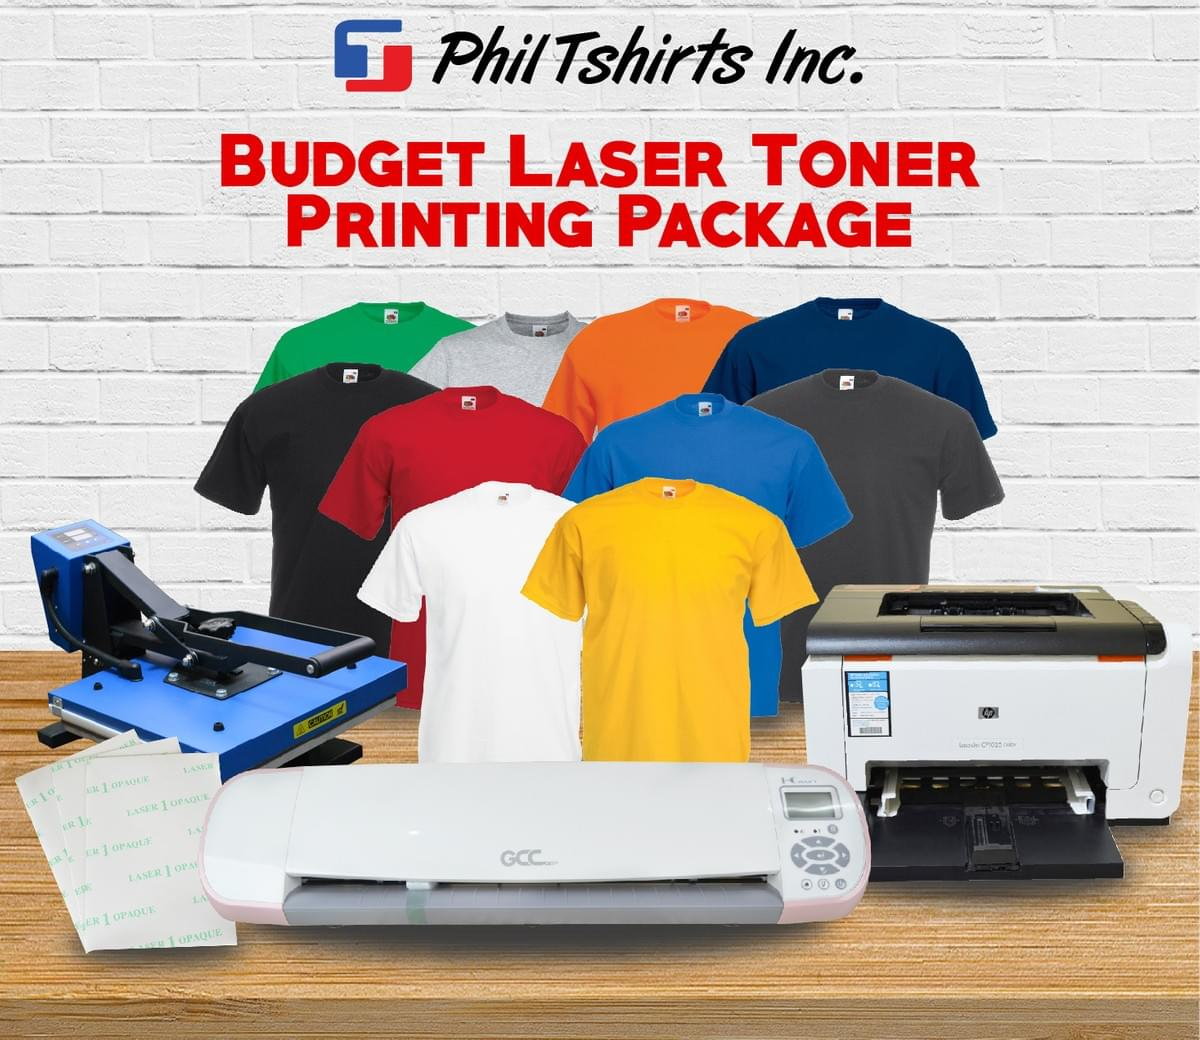 T Shirt Printing Business - Phil Tshirts Inc Start Your Own